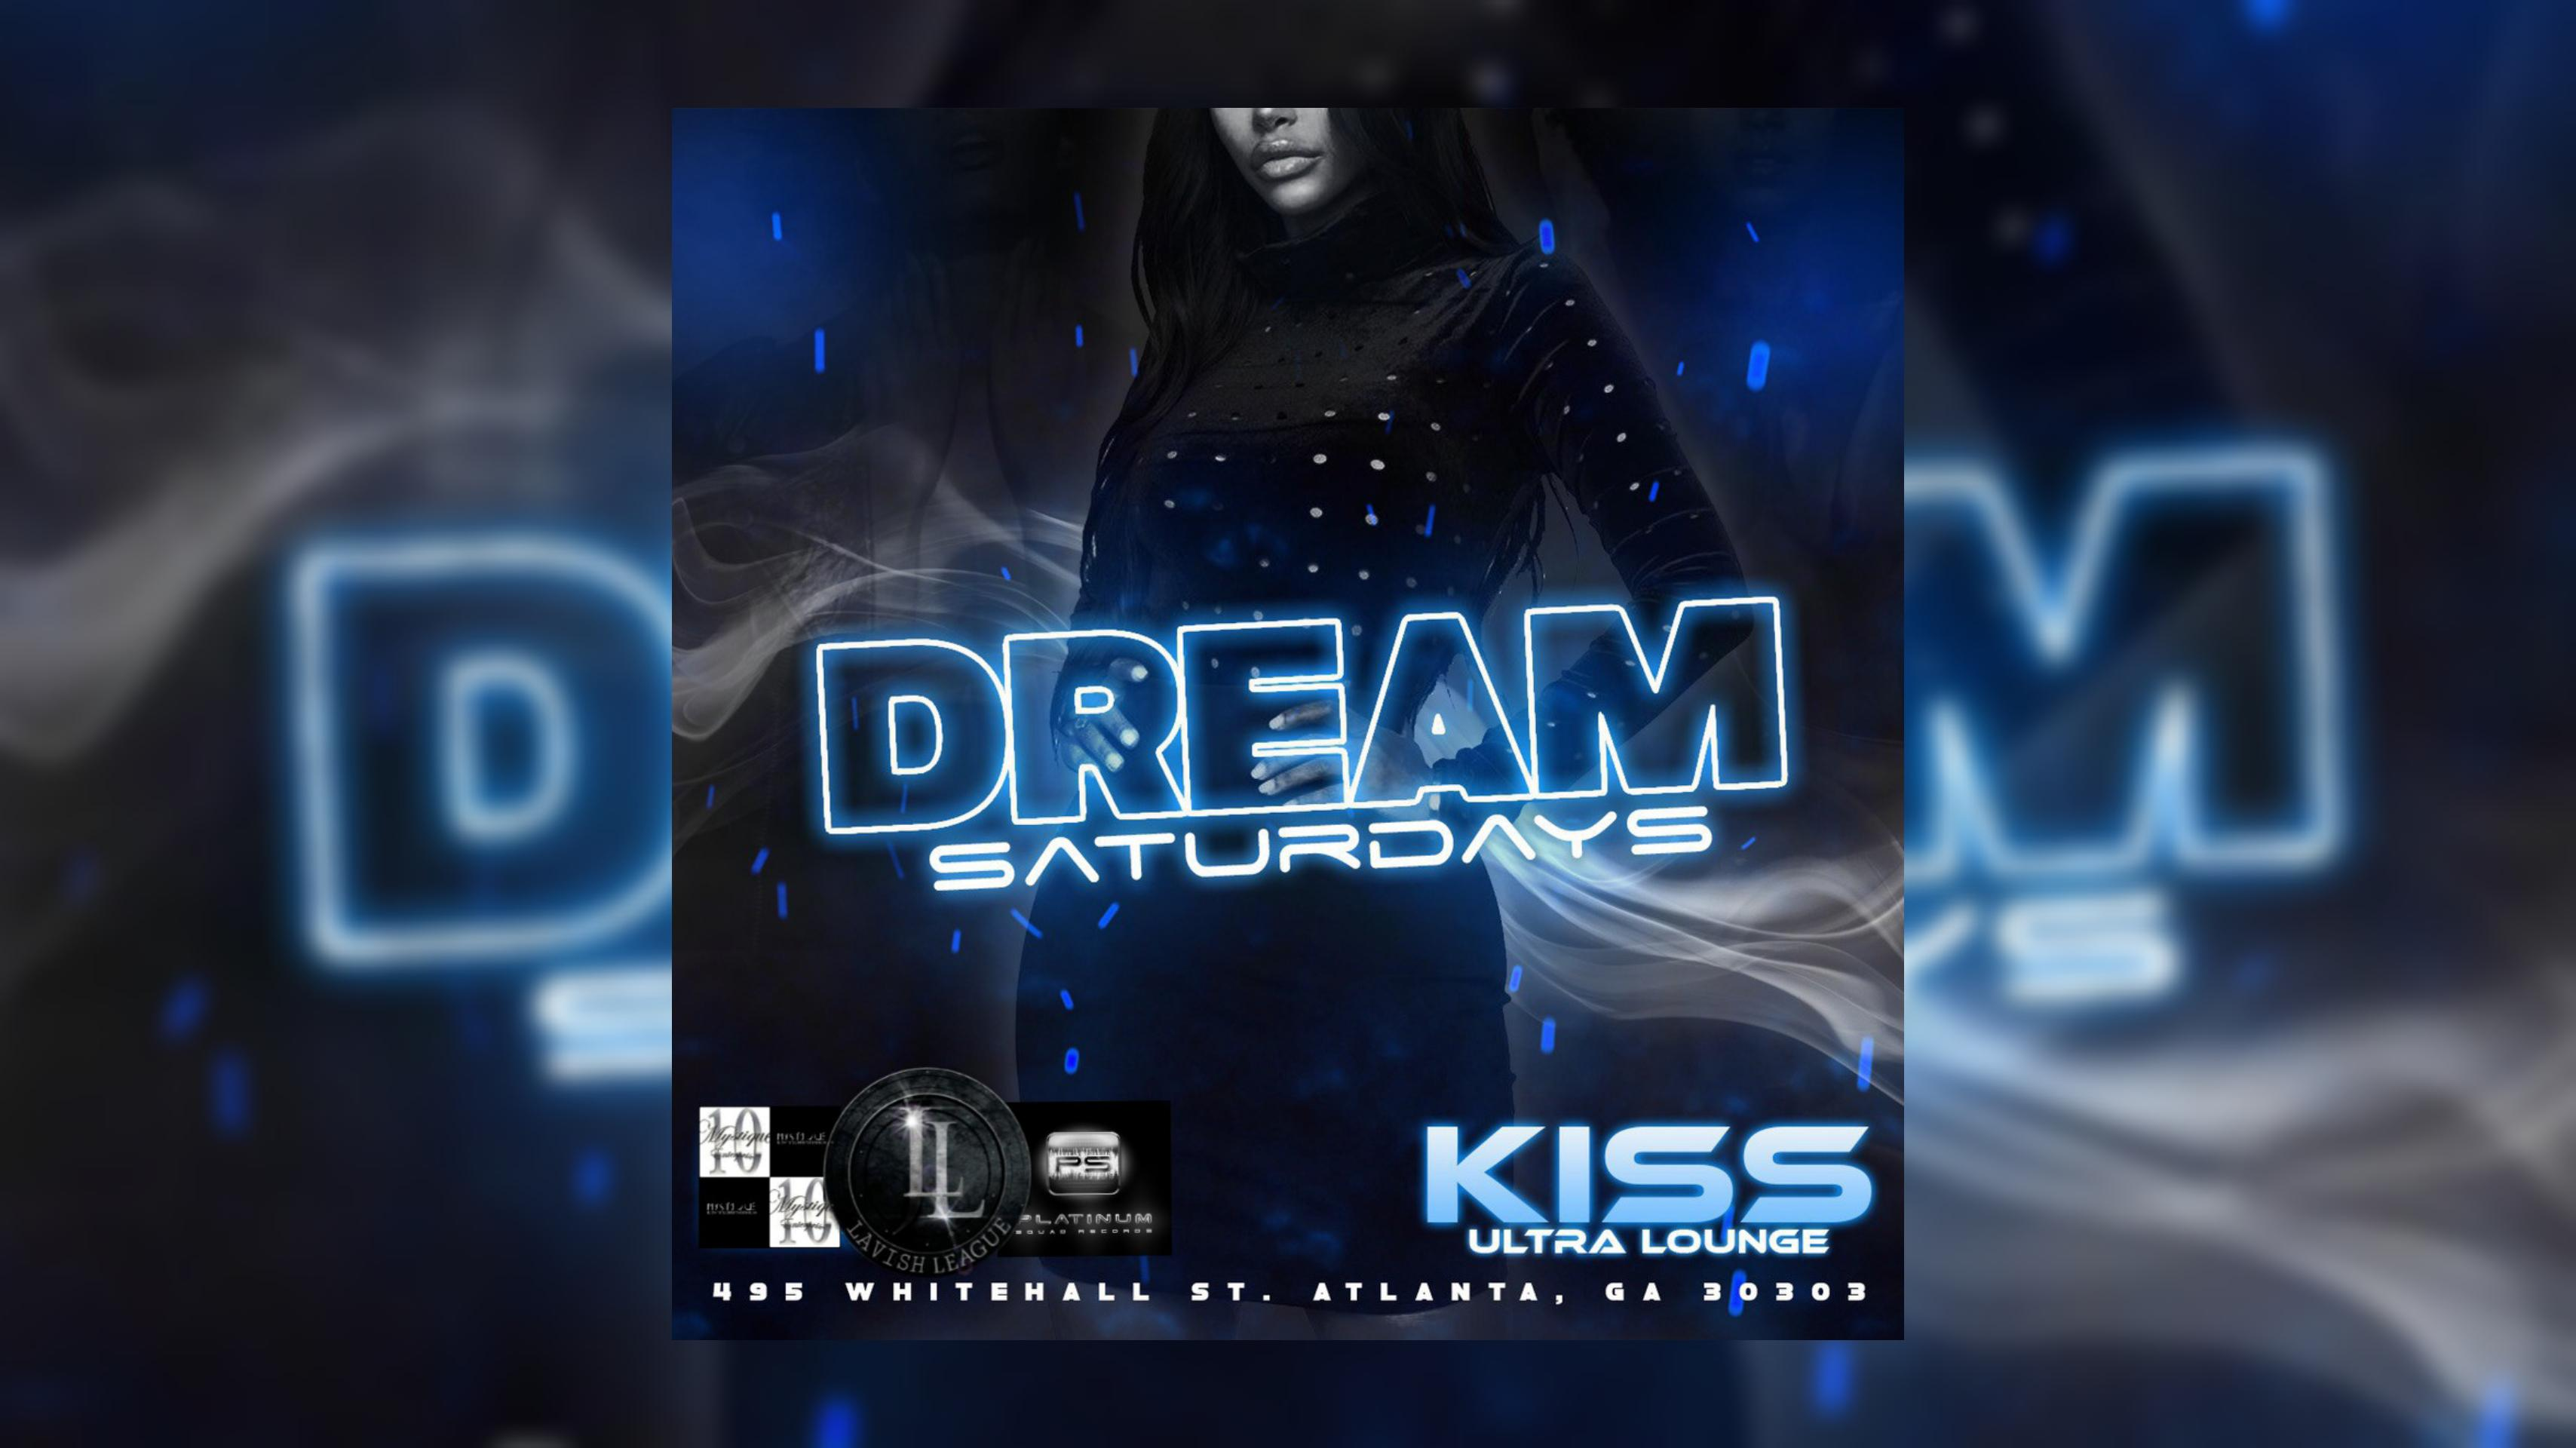 KISS ULTRA LOUNGE: DREAM SATURDAYS...Enter FREE W/RSVP...FREE BDAYS